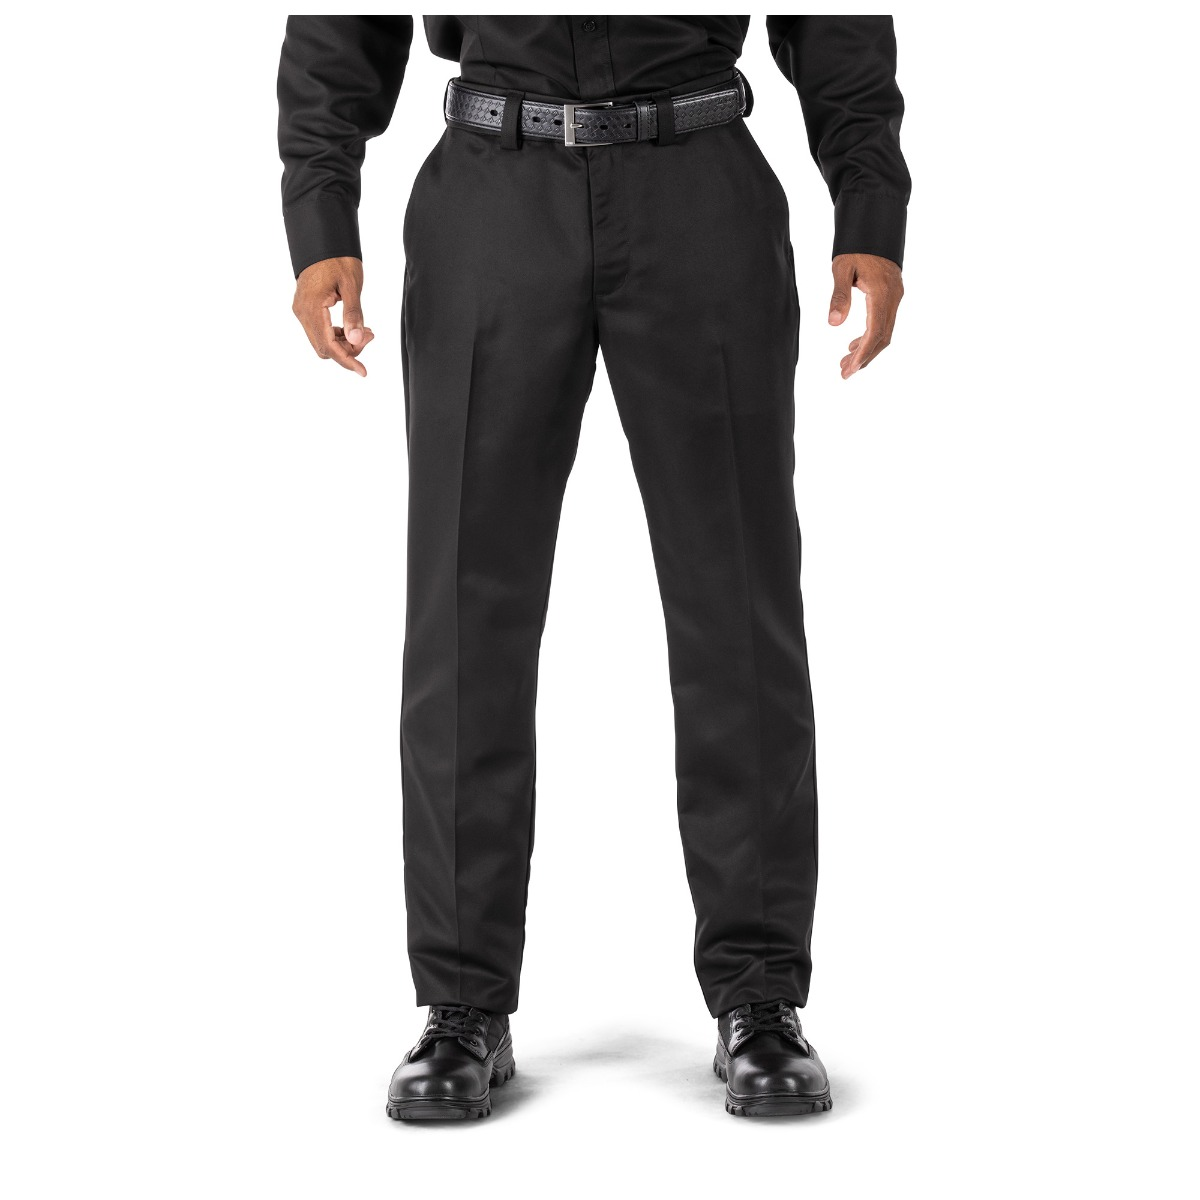 5.11 Tactical Men's Class A Fast-Tac Twill Pant